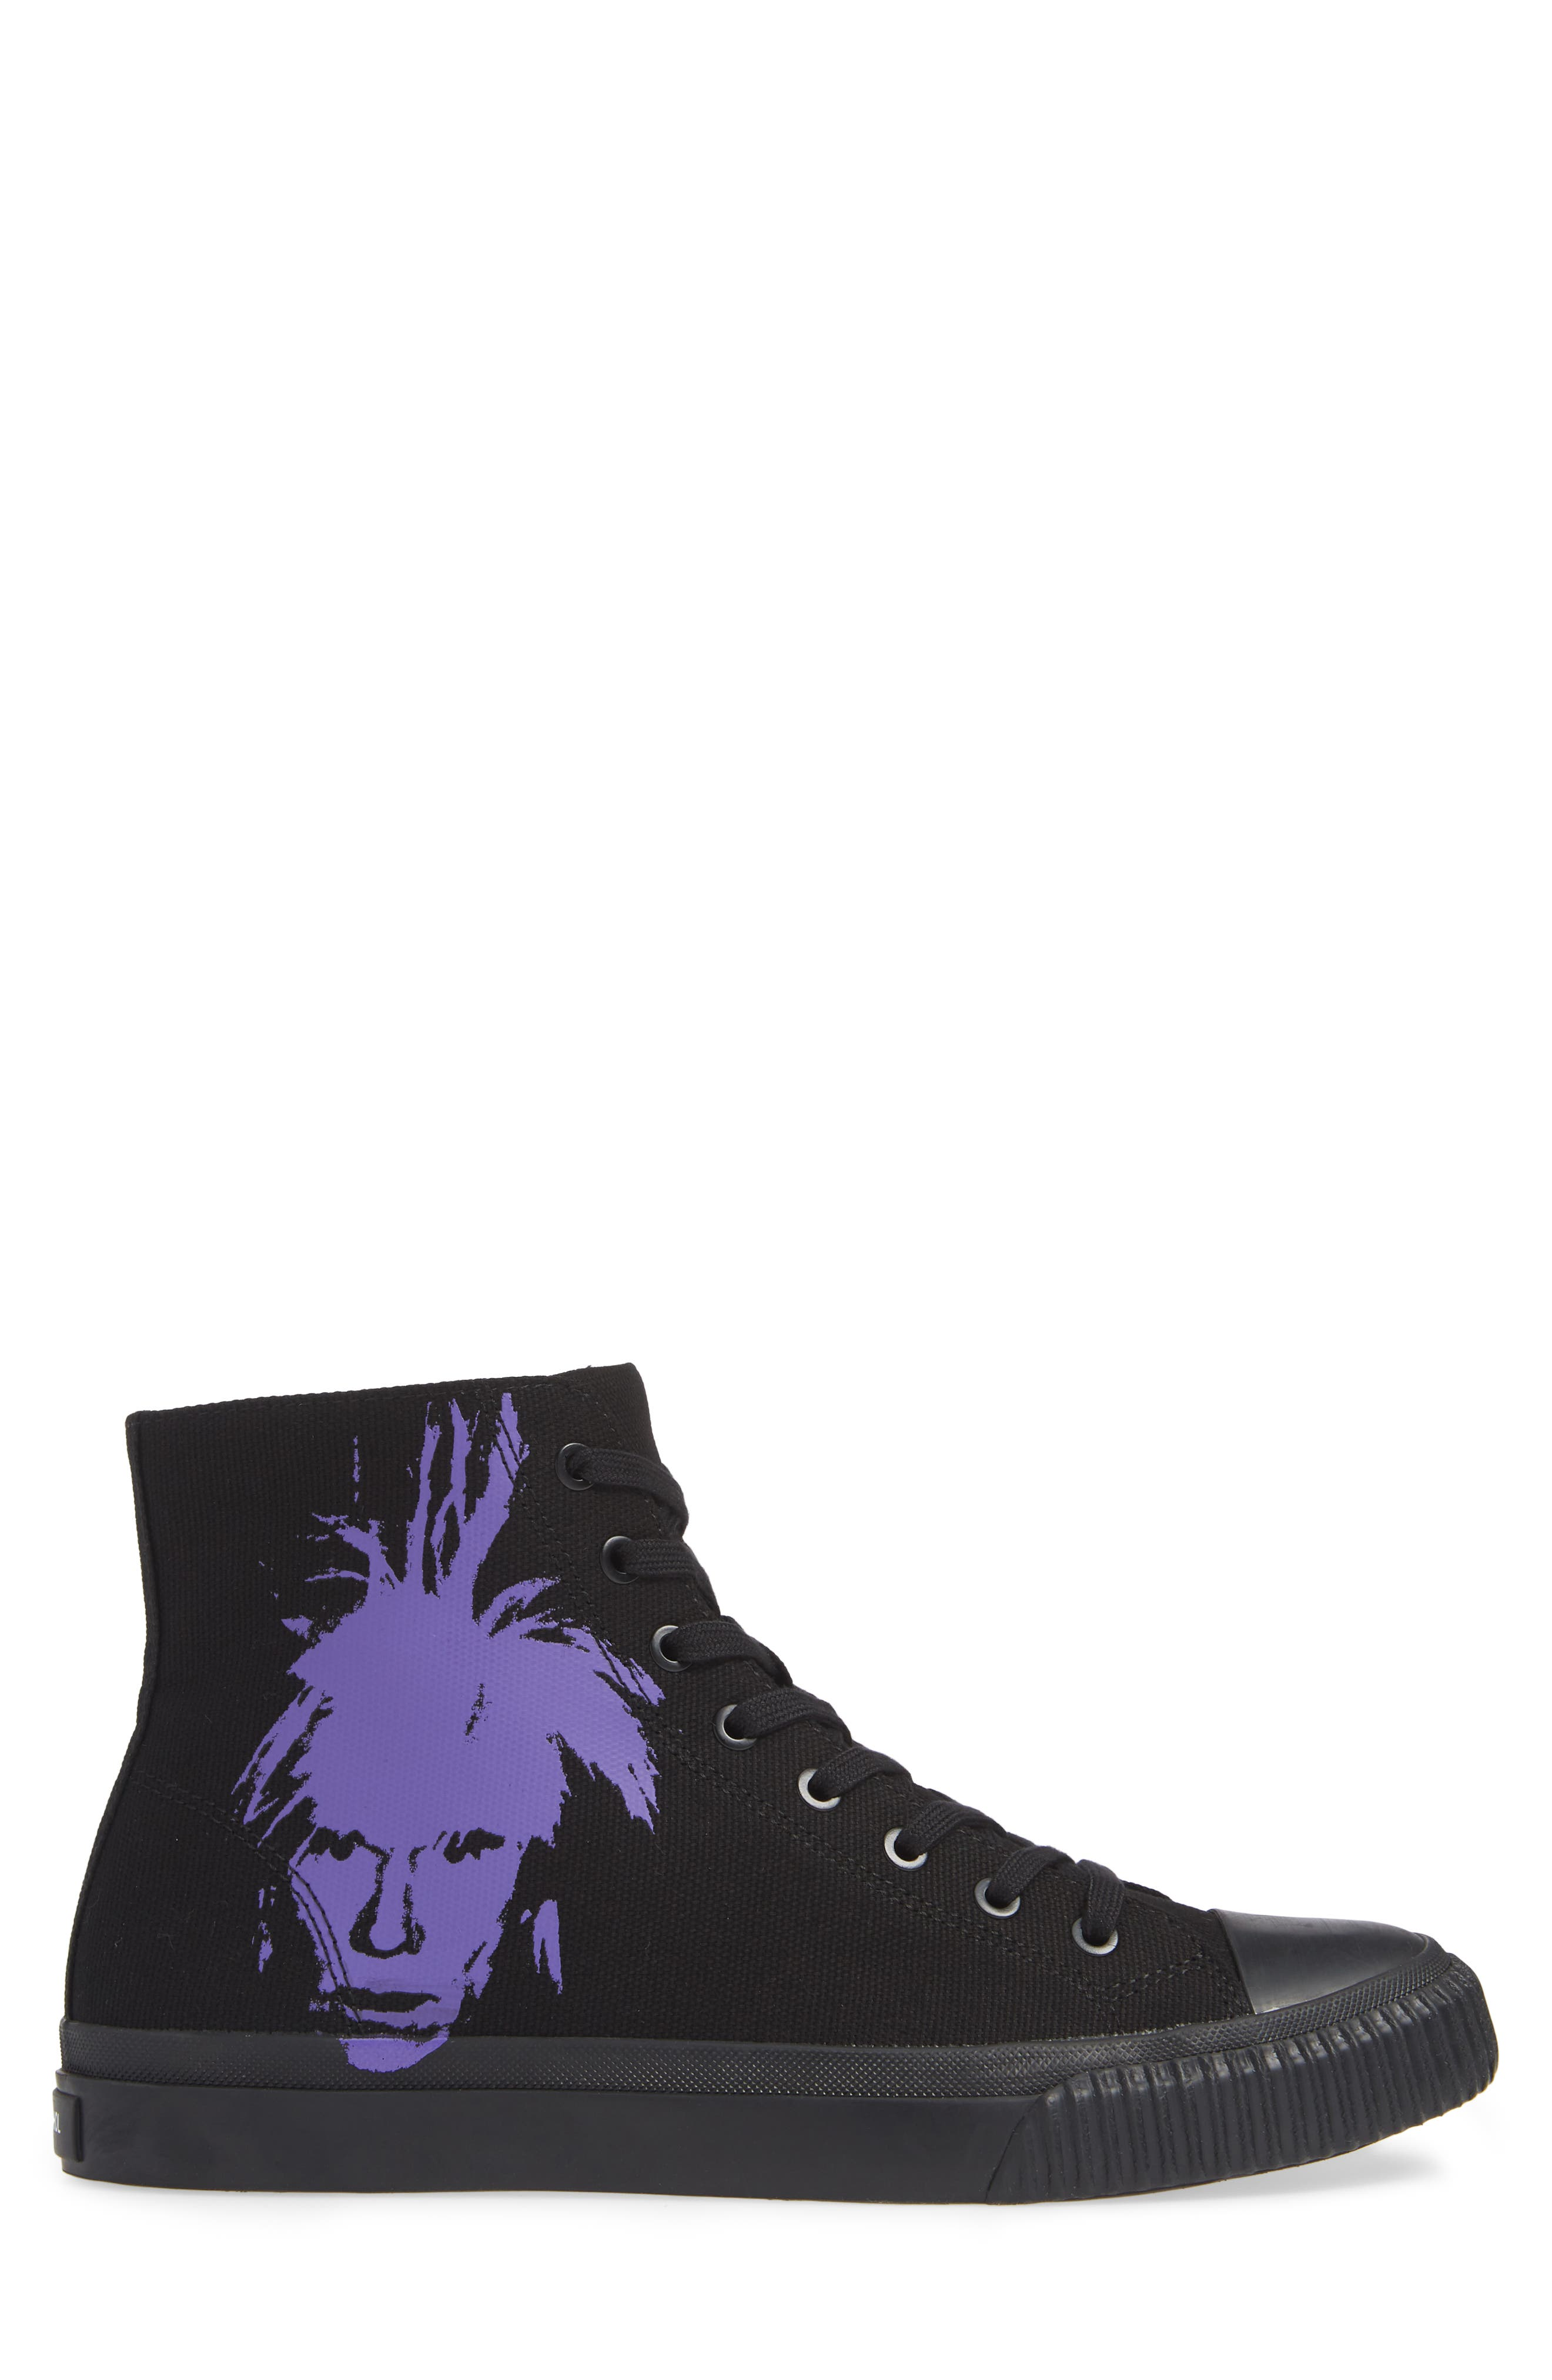 Iconic Warhol Sneaker,                             Alternate thumbnail 3, color,                             006